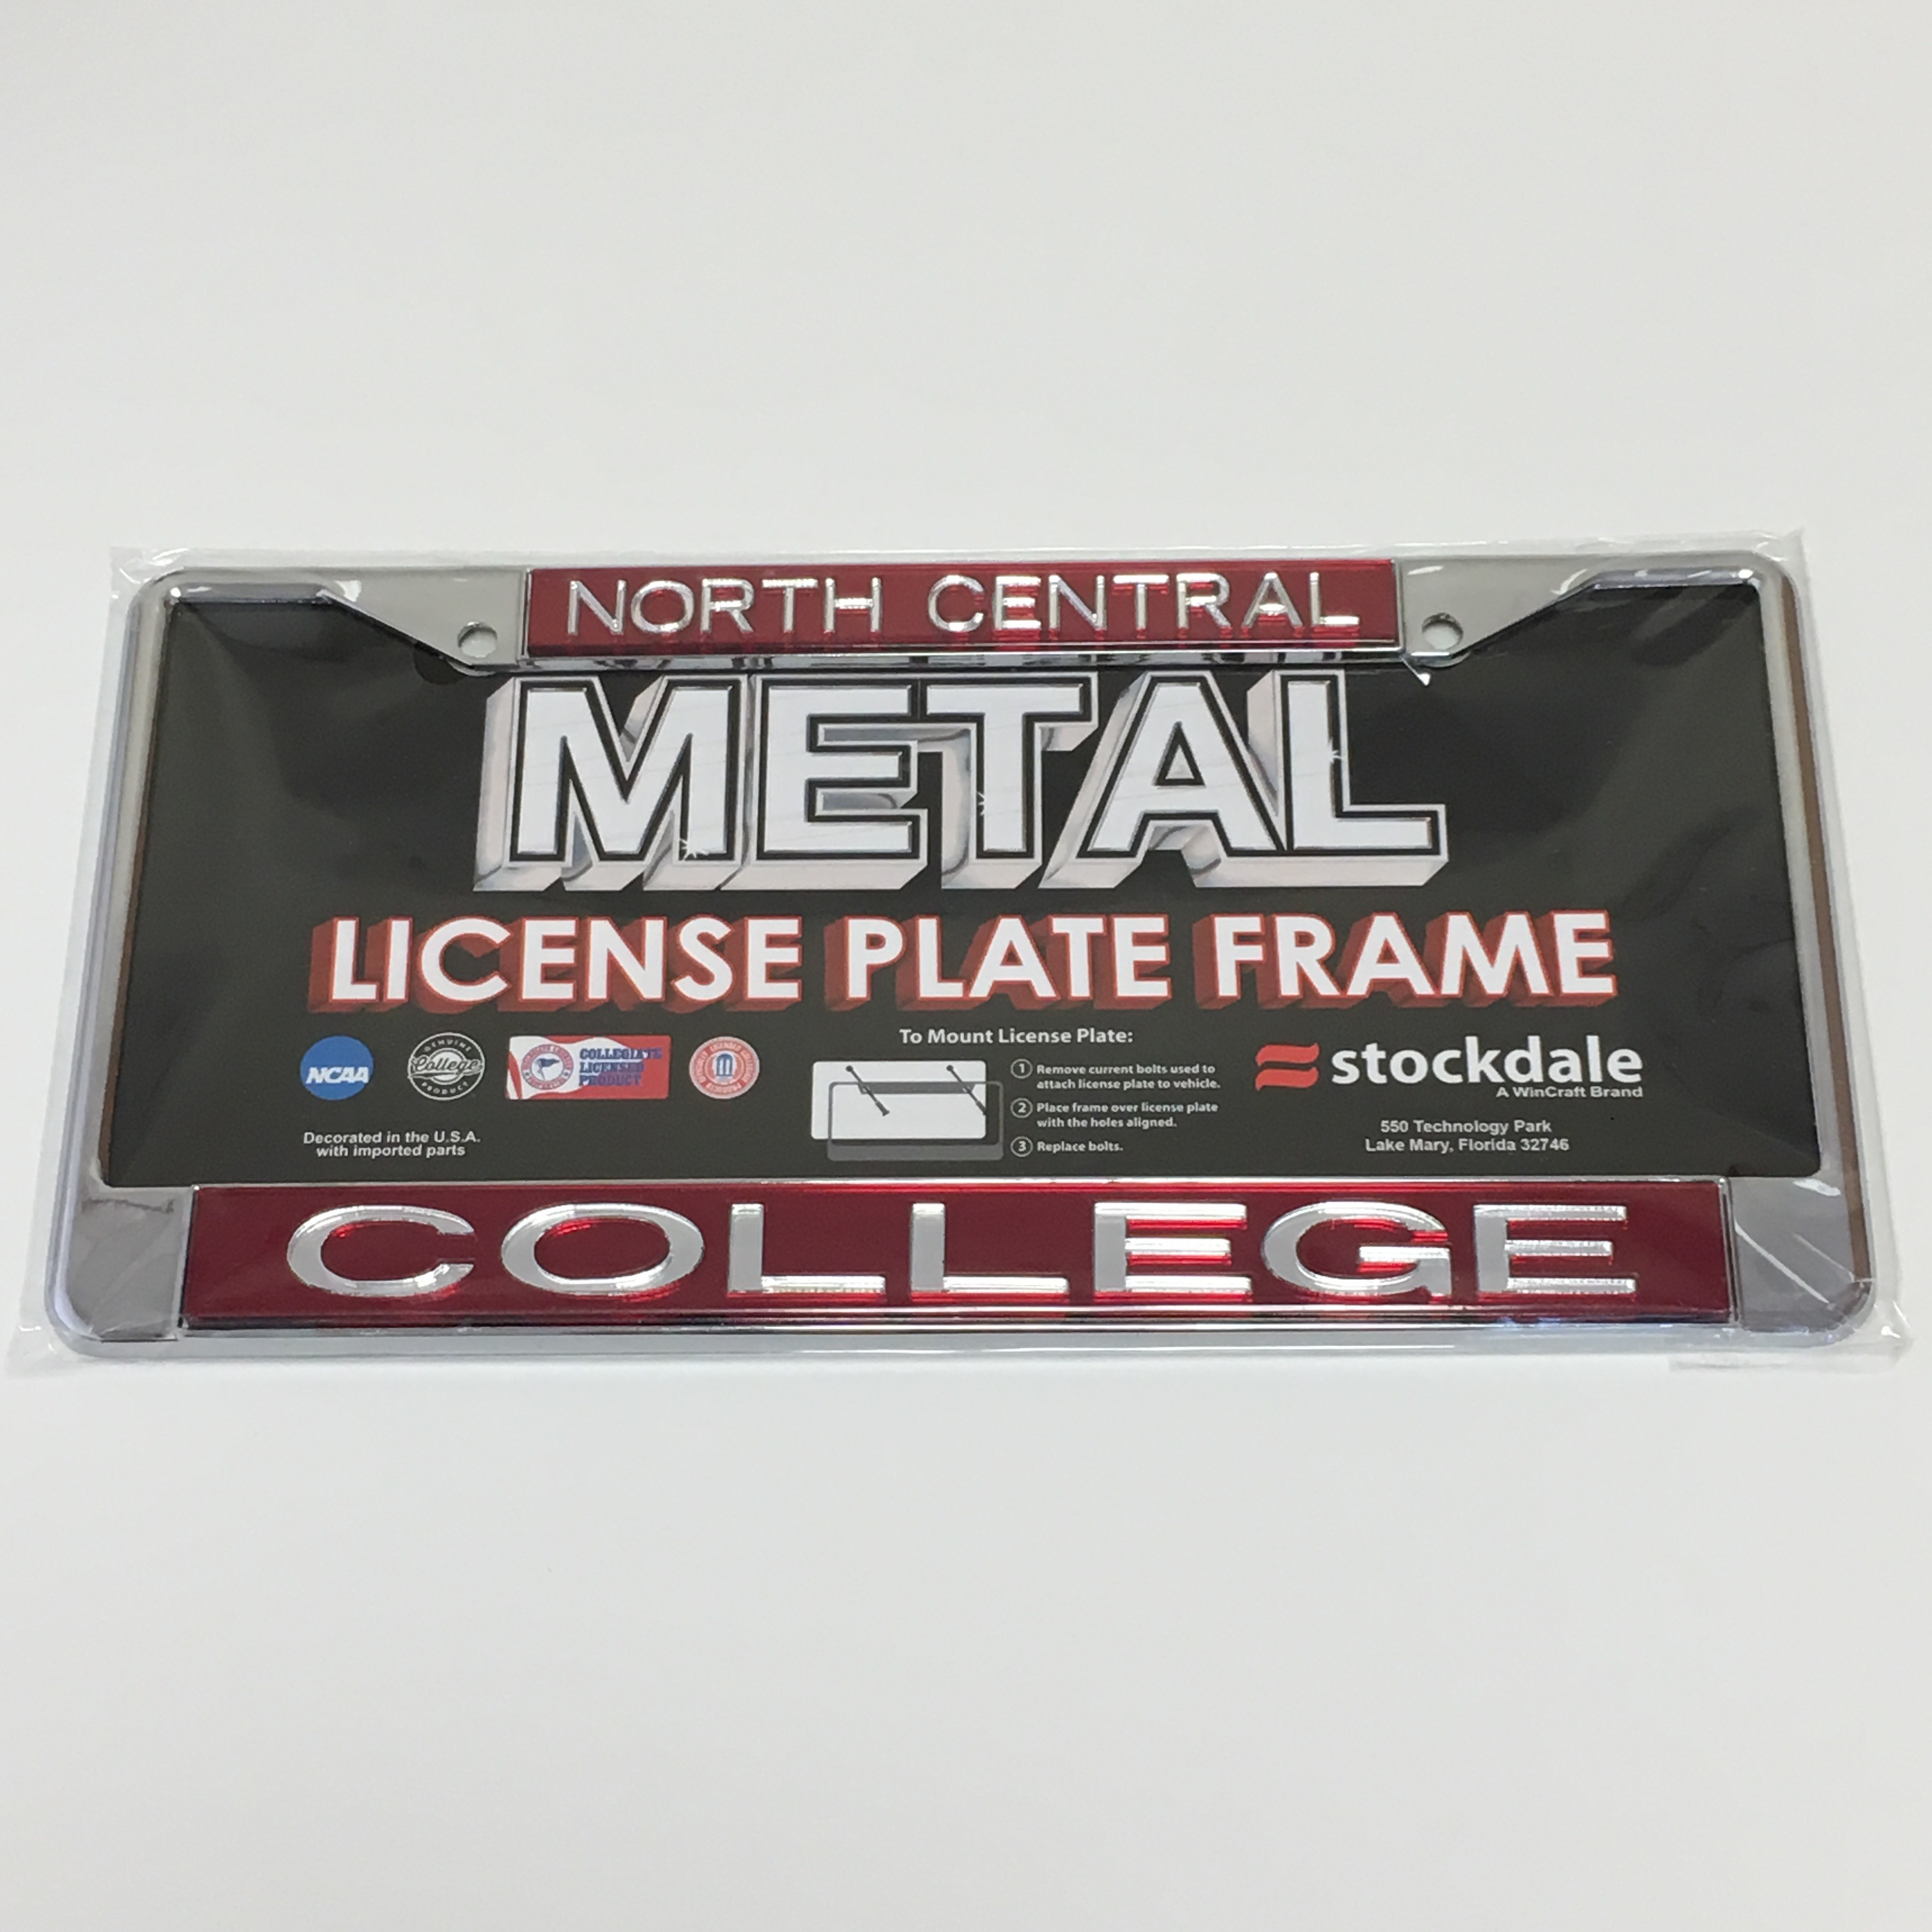 Image for the License Plate Frame Metal Acrylic product